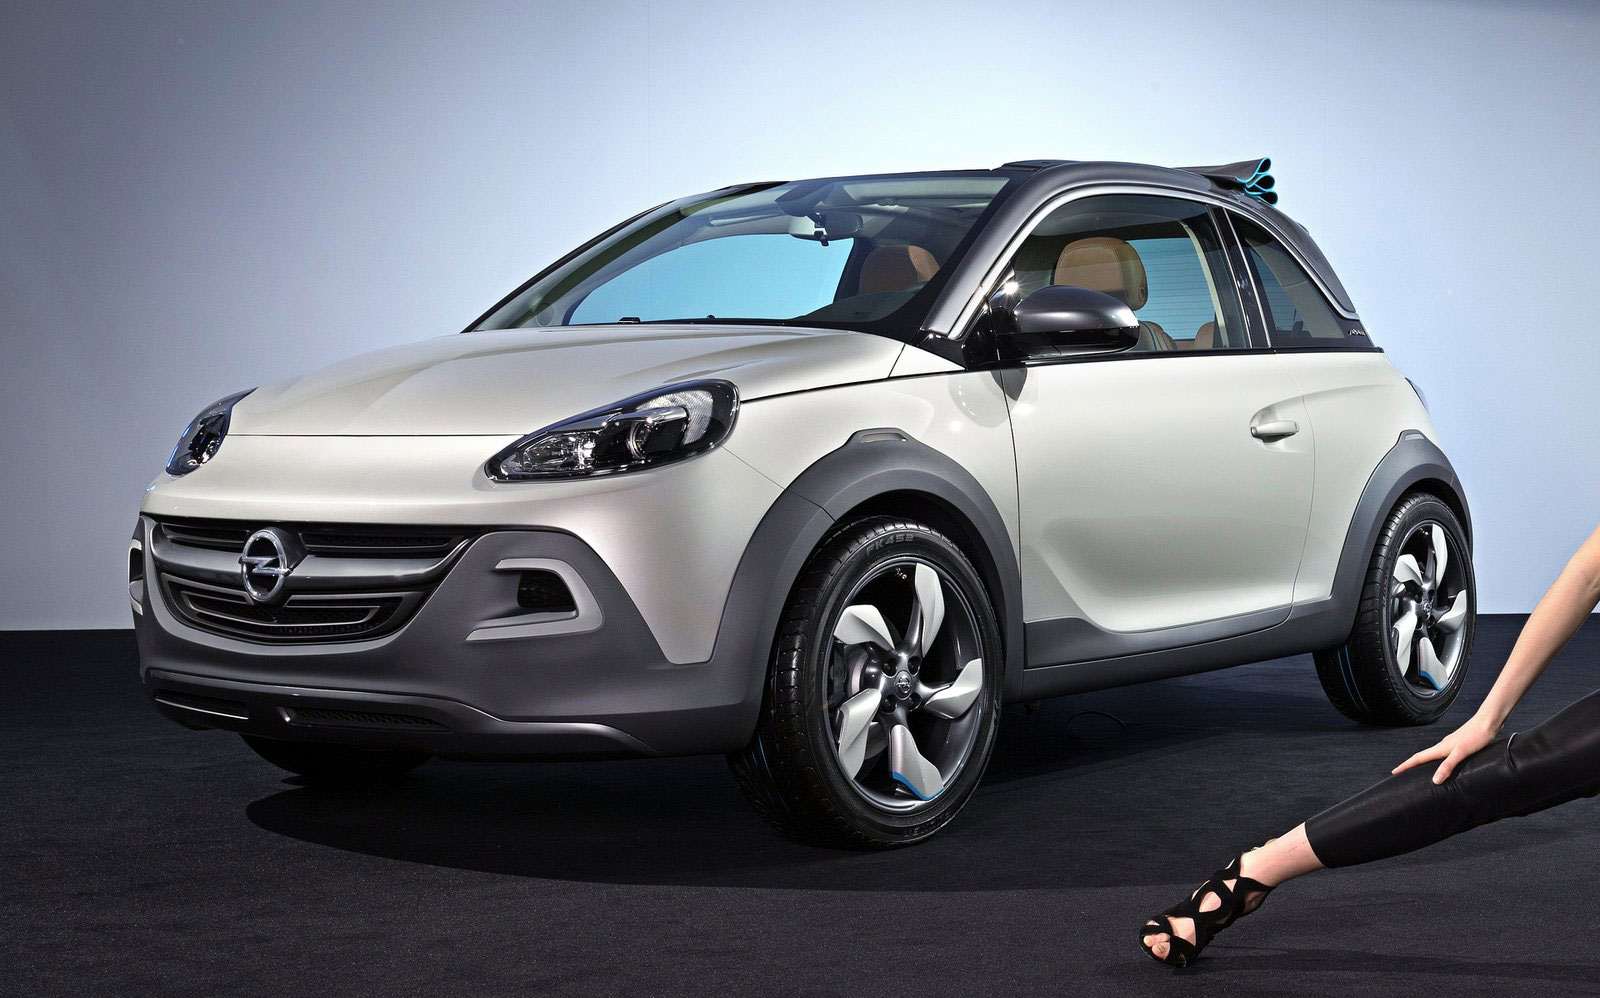 gallery opel adam rocks open air 4x4 styled. Black Bedroom Furniture Sets. Home Design Ideas